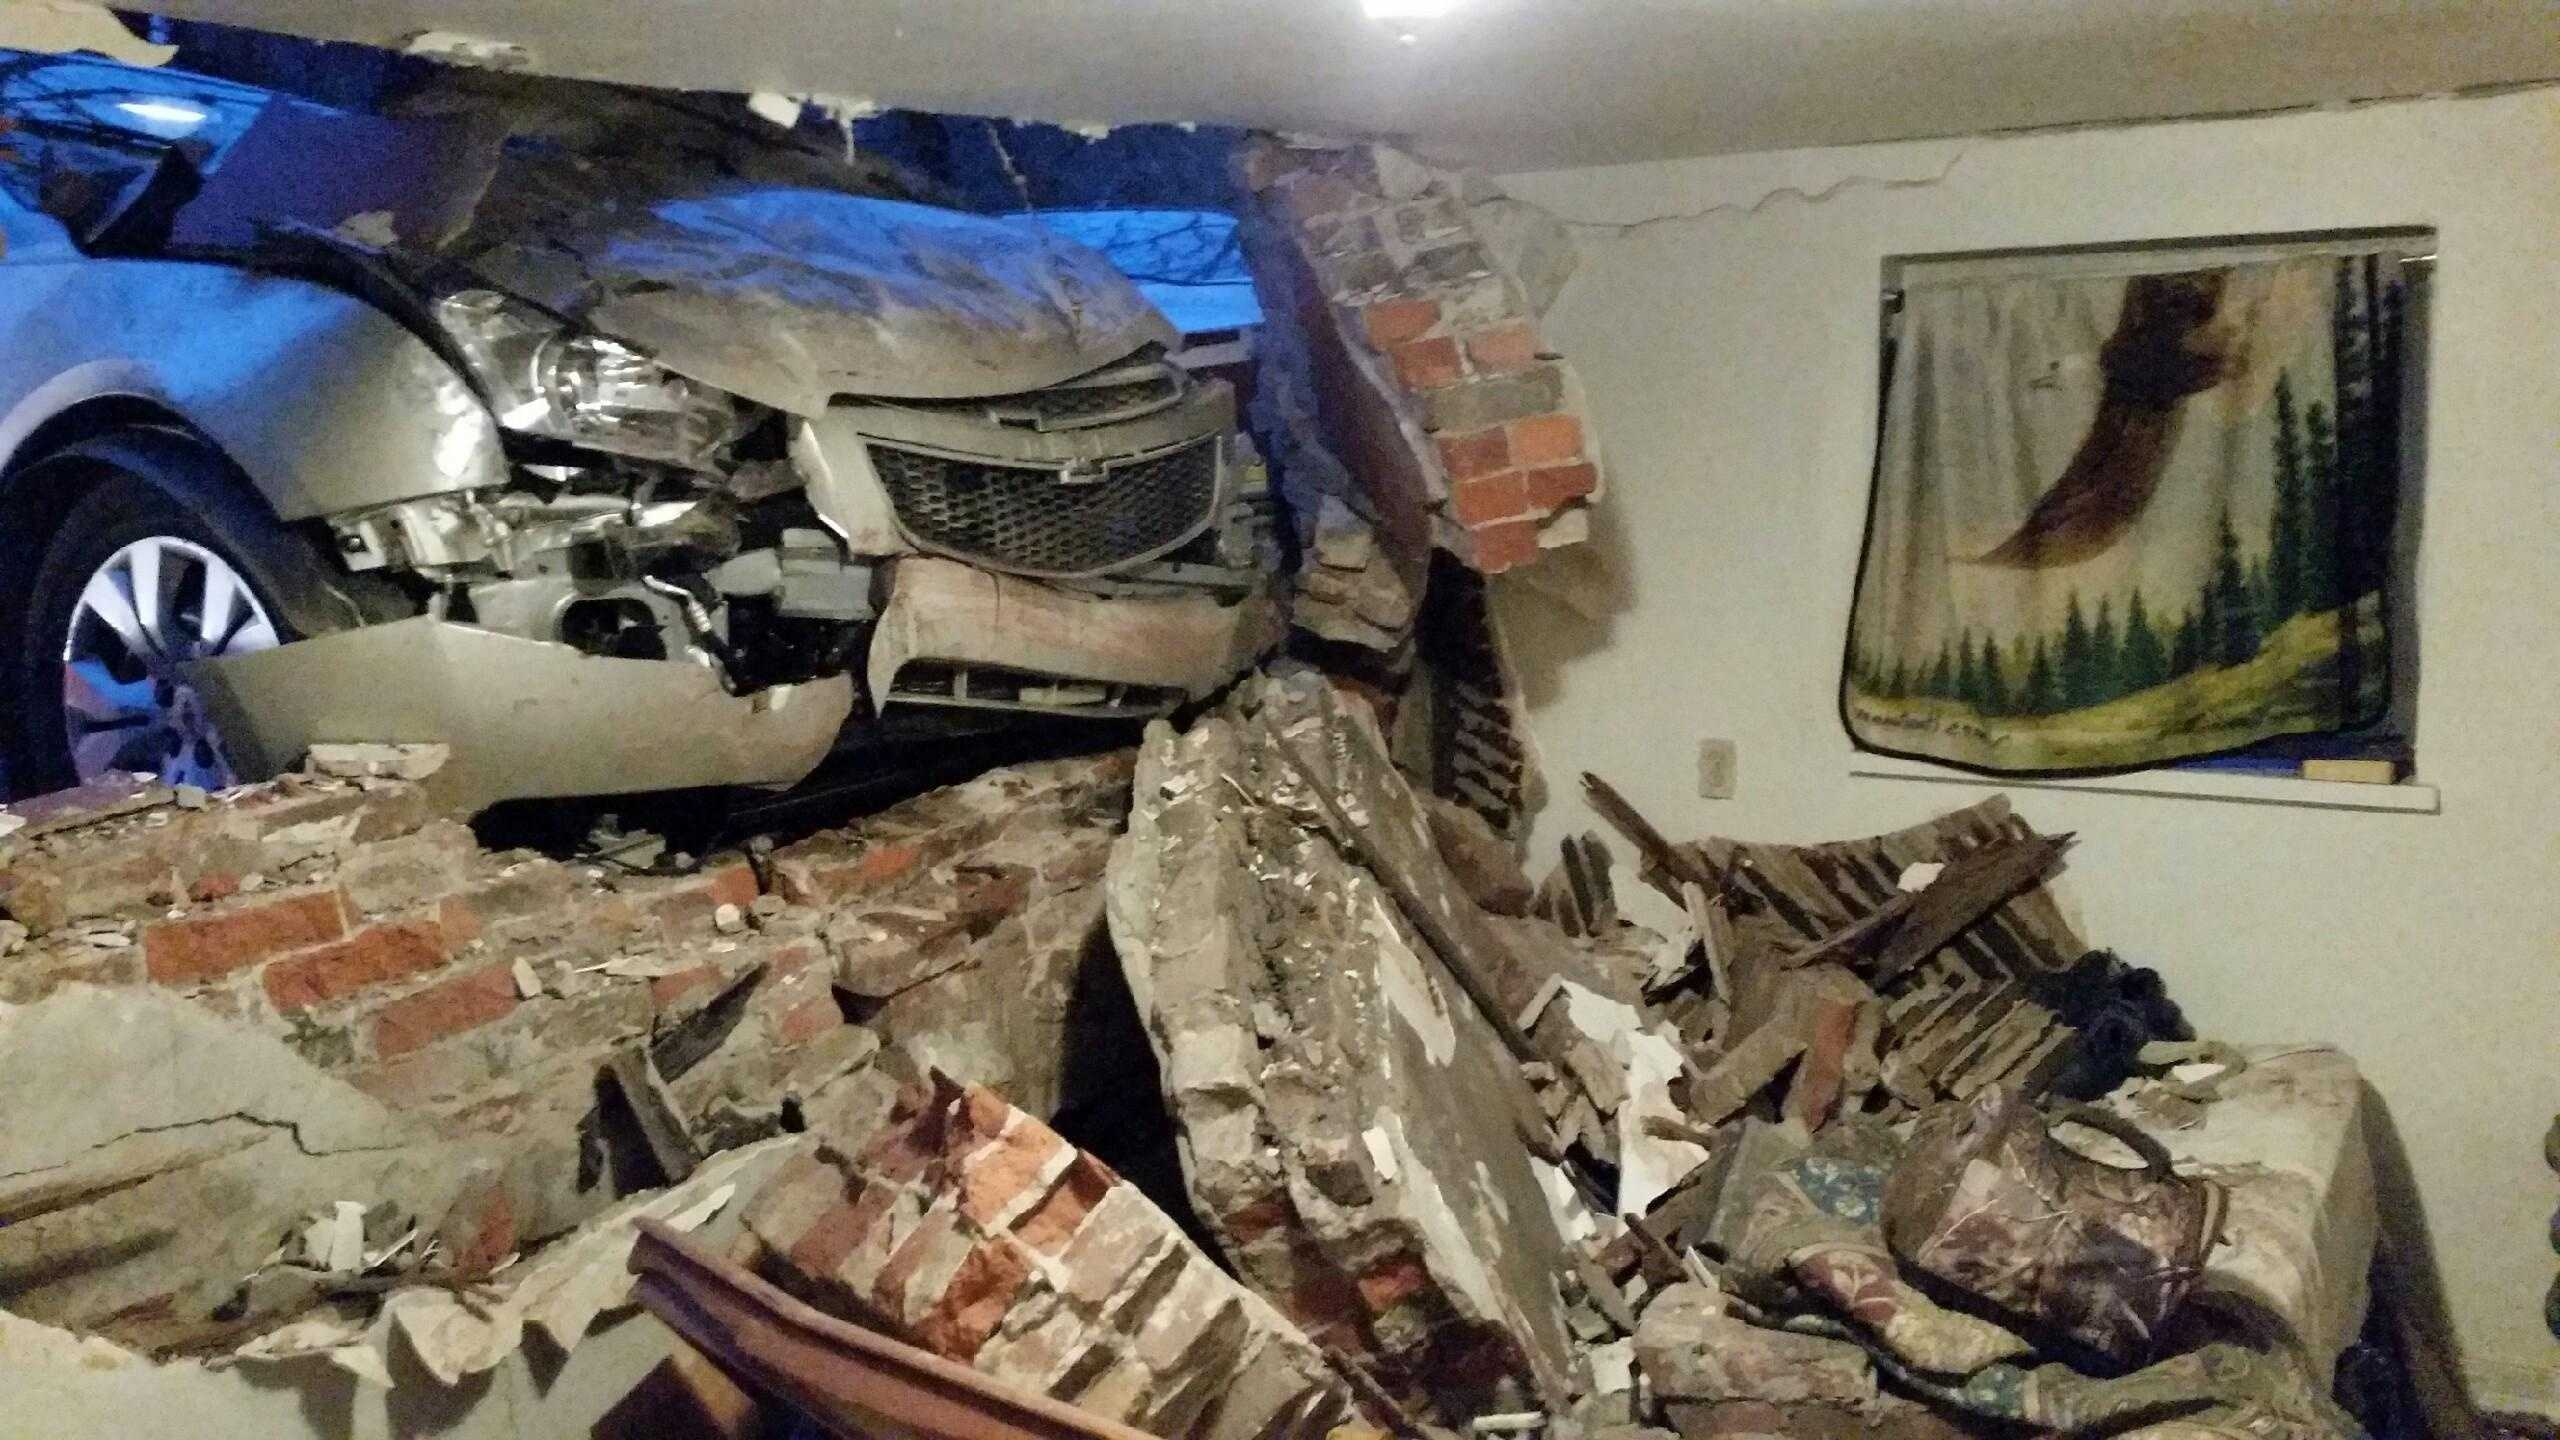 A car crashed into a house in Pittsburgh's Oakland neighborhood early Wednesday morning.